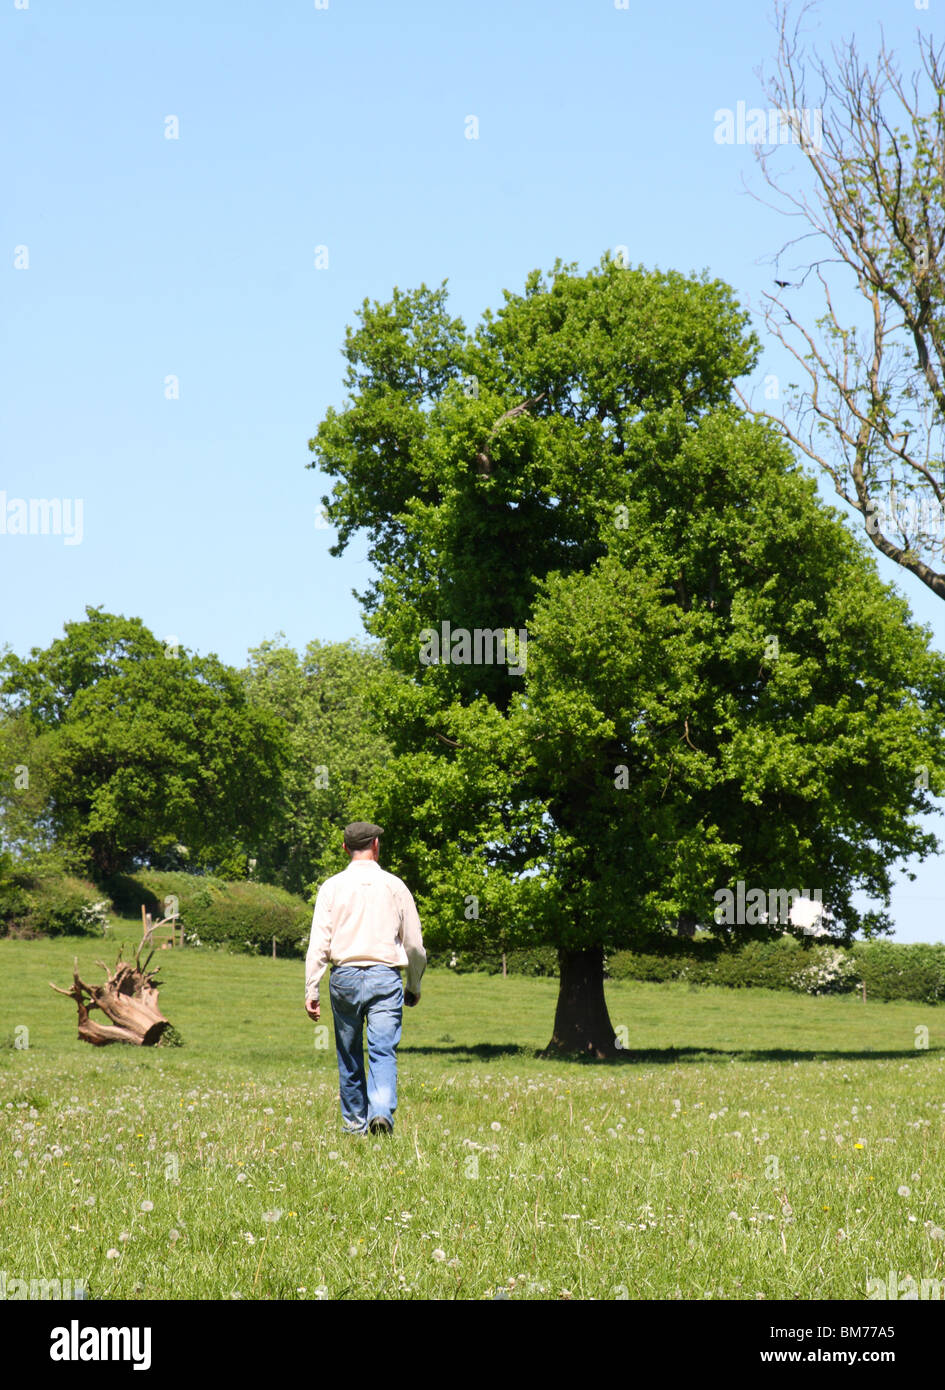 A farmer on greenbelt land in the English countryside. - Stock Image